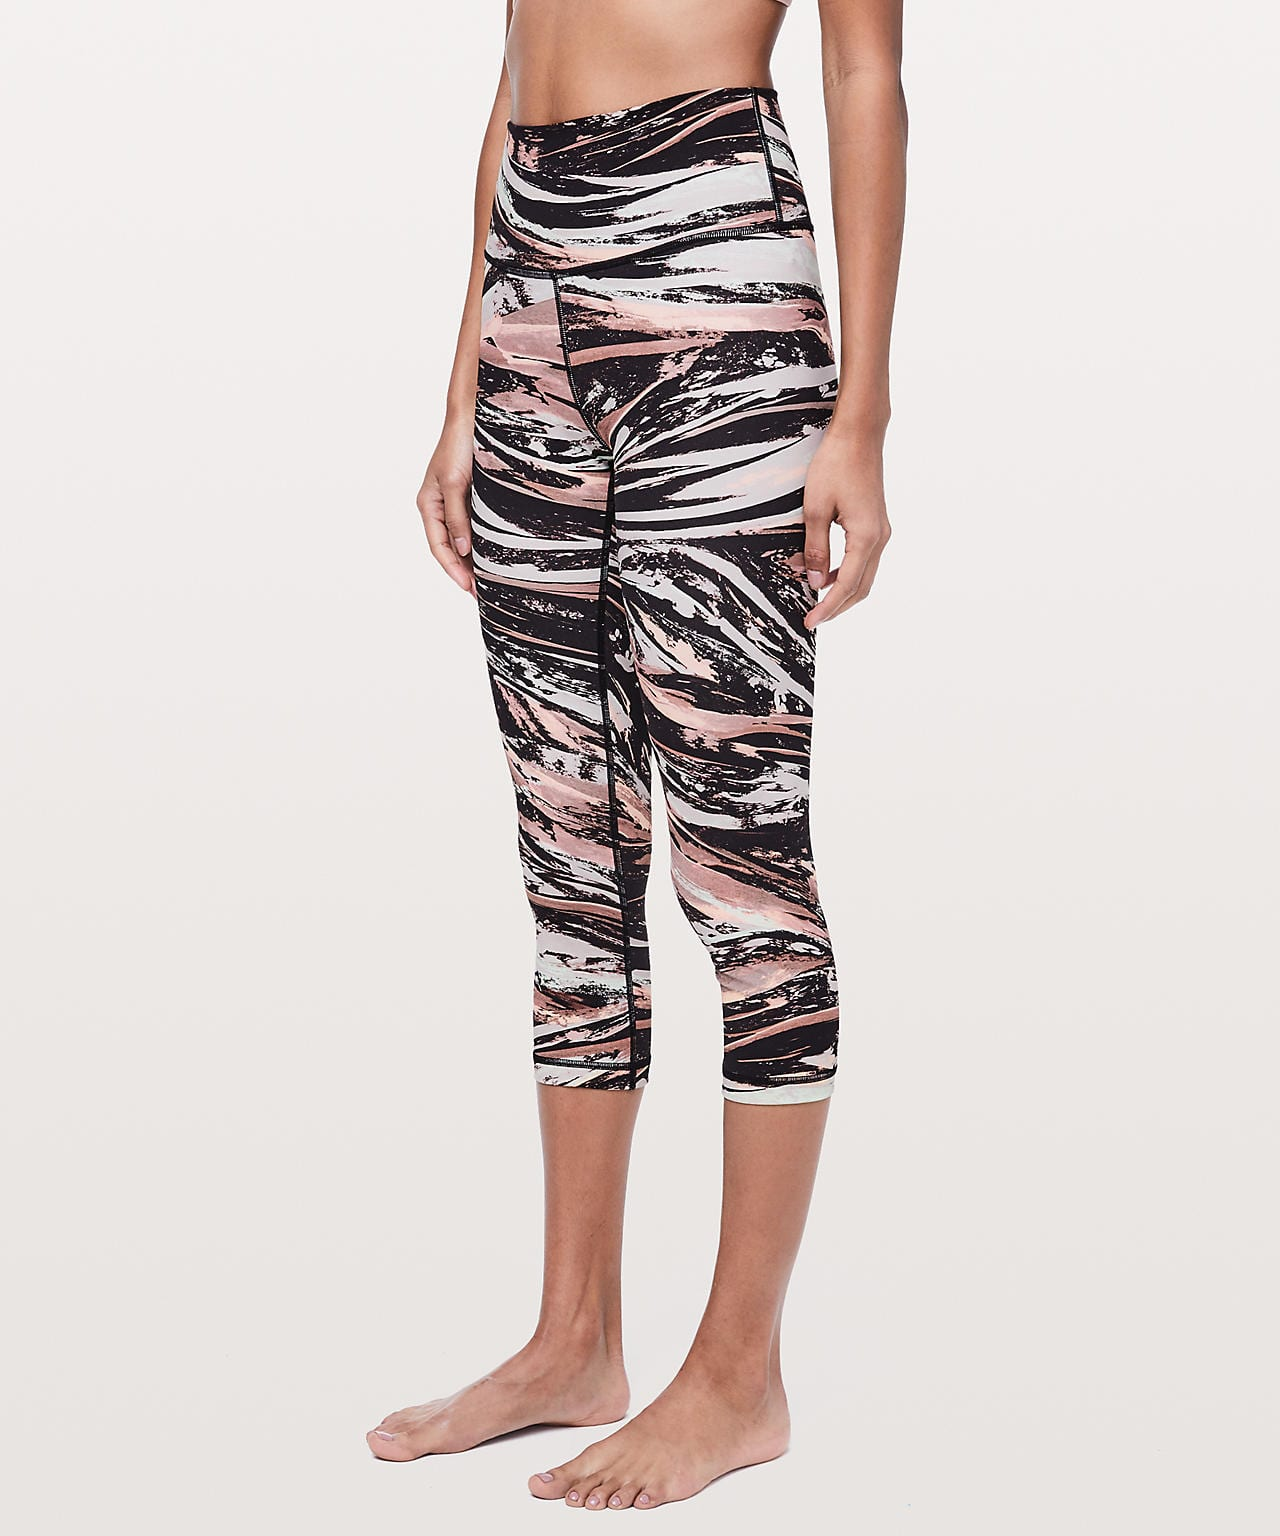 Wunder Under Crop High-Rise Colour Splash Multi